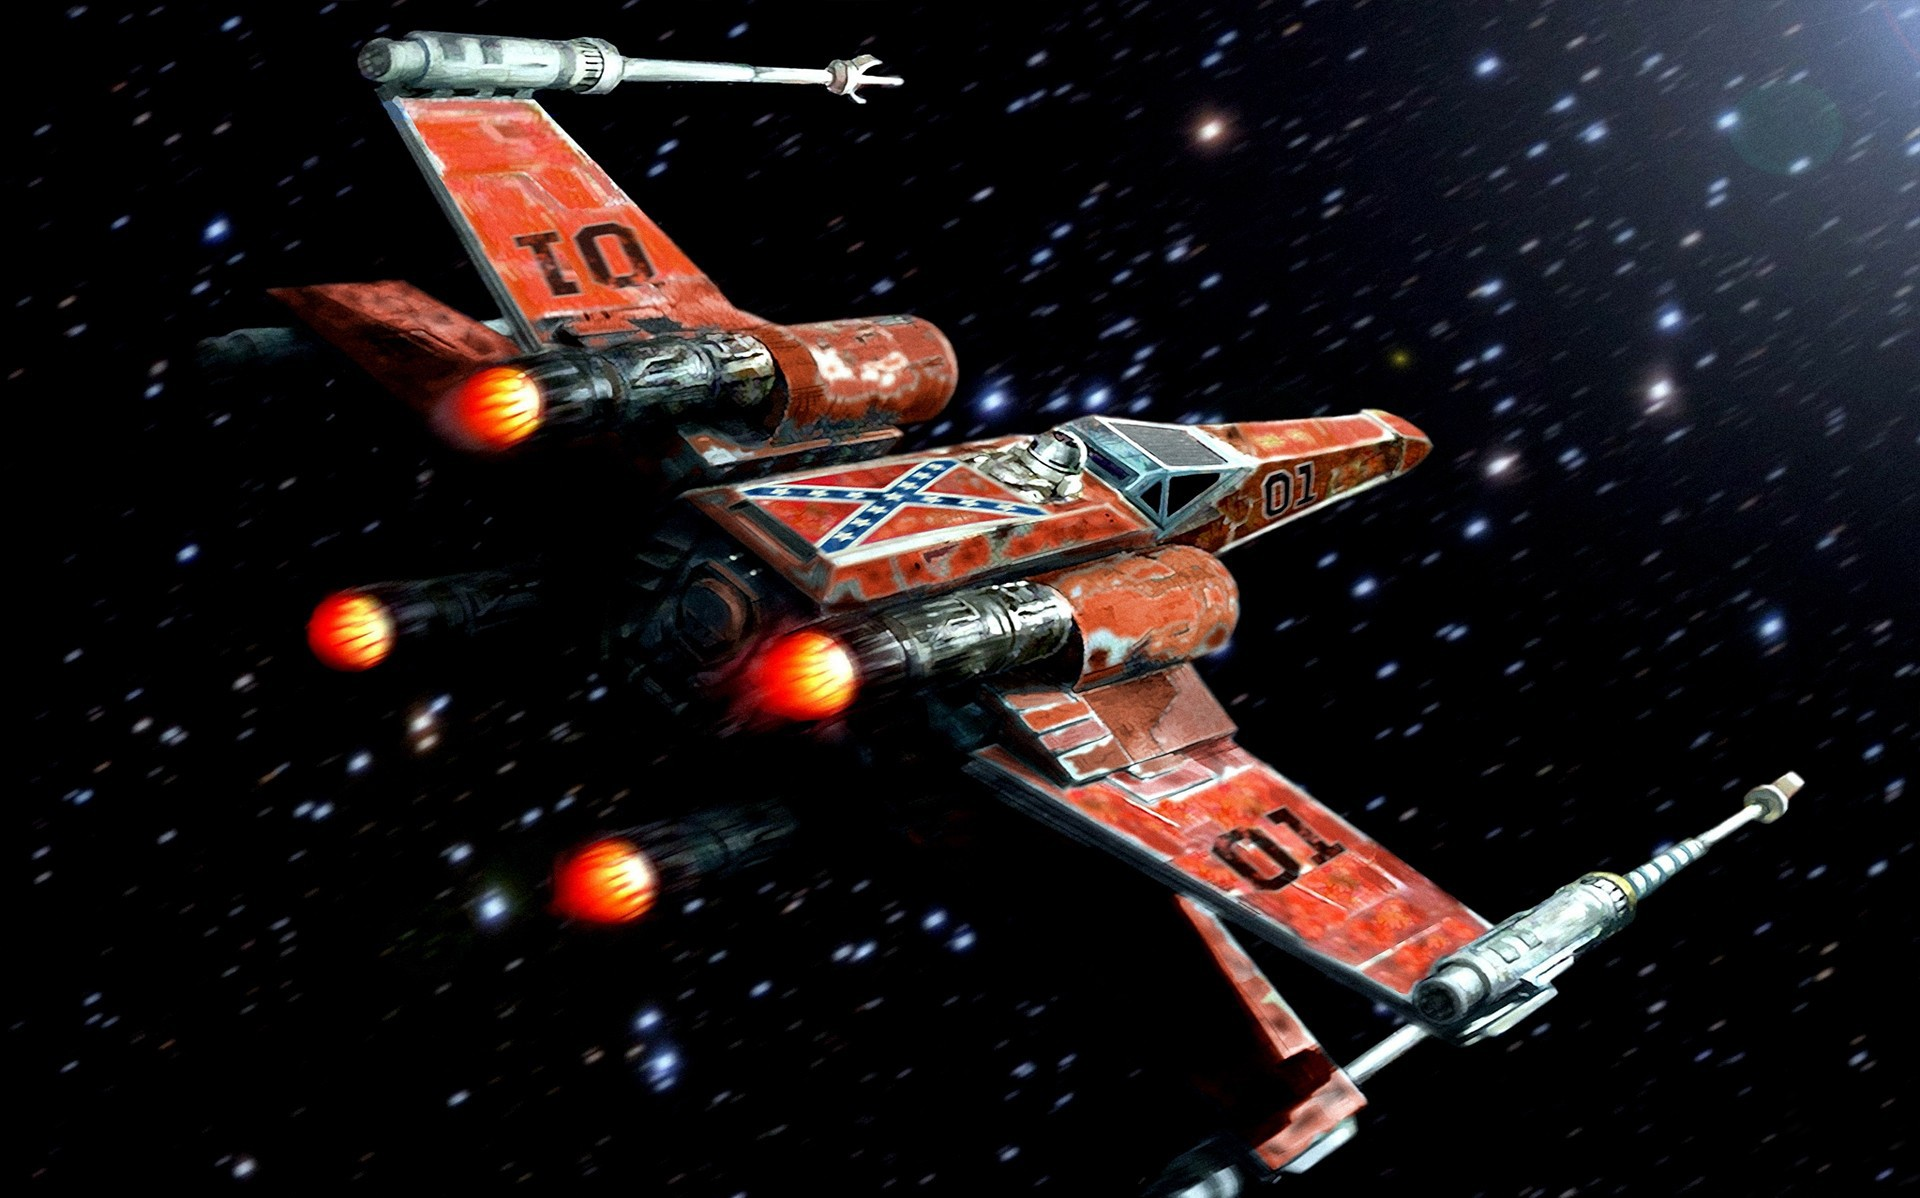 X Wing Fighter Iphone Wallpaper Rebel Alliance X Wing Star Wars Wallpaper Movies And